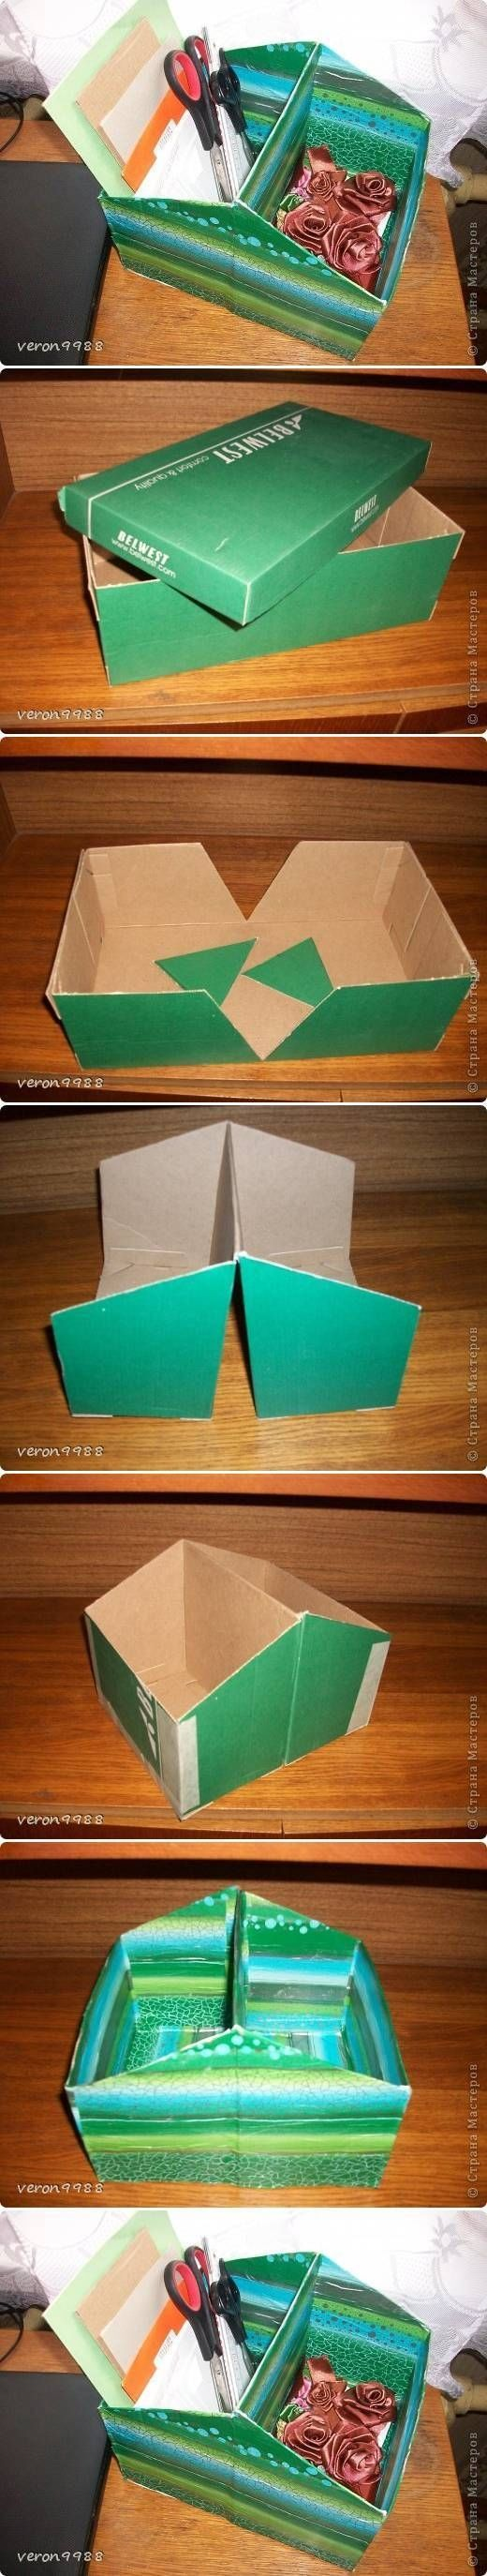 Diy shoe box organizer pictures photos and images for for Diy shoe storage with cardboard